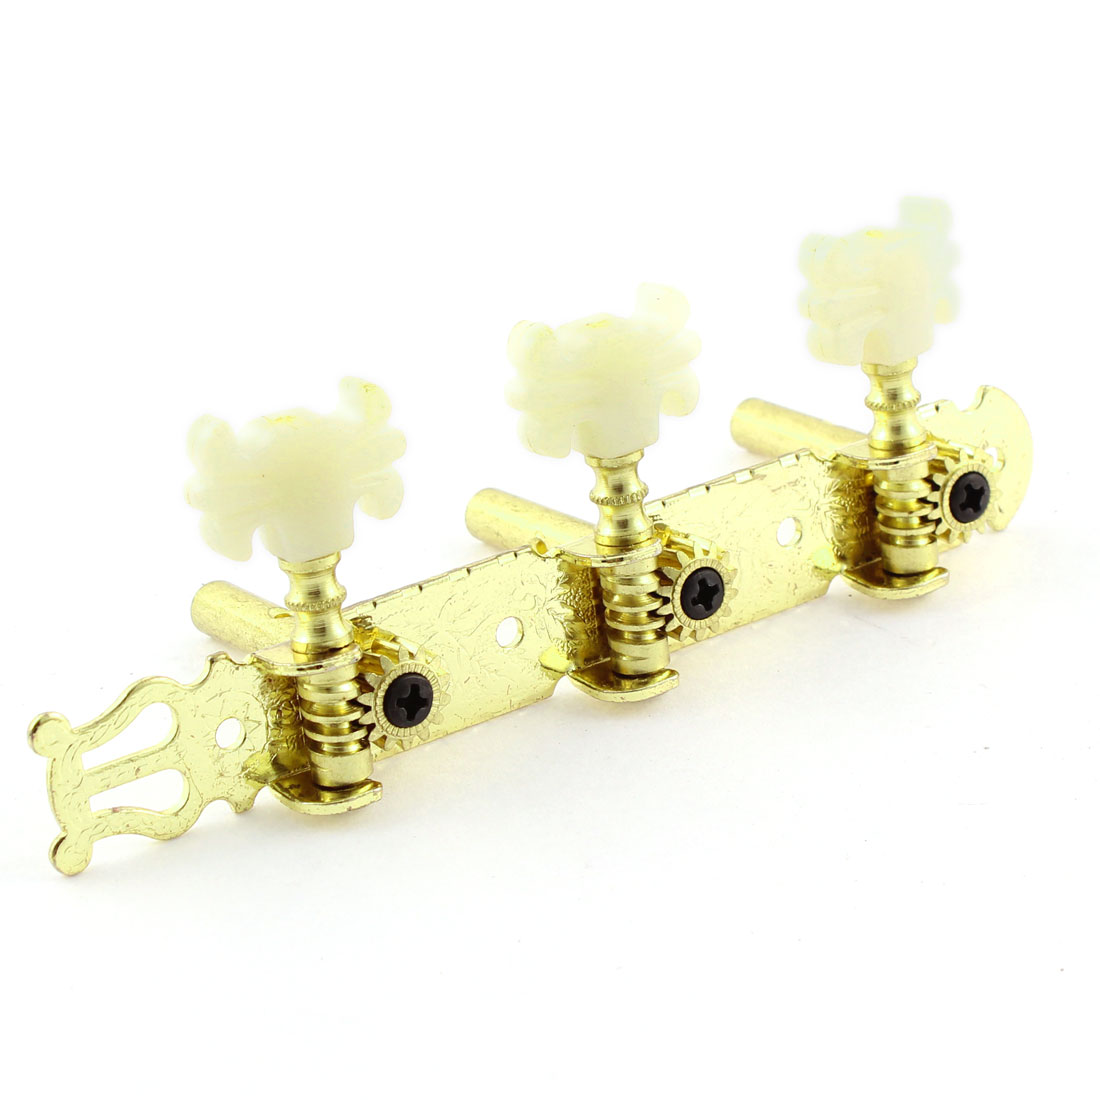 Gold Tone 3 Spare Part Musical Guitar Tuning Pegs Machine Tuner